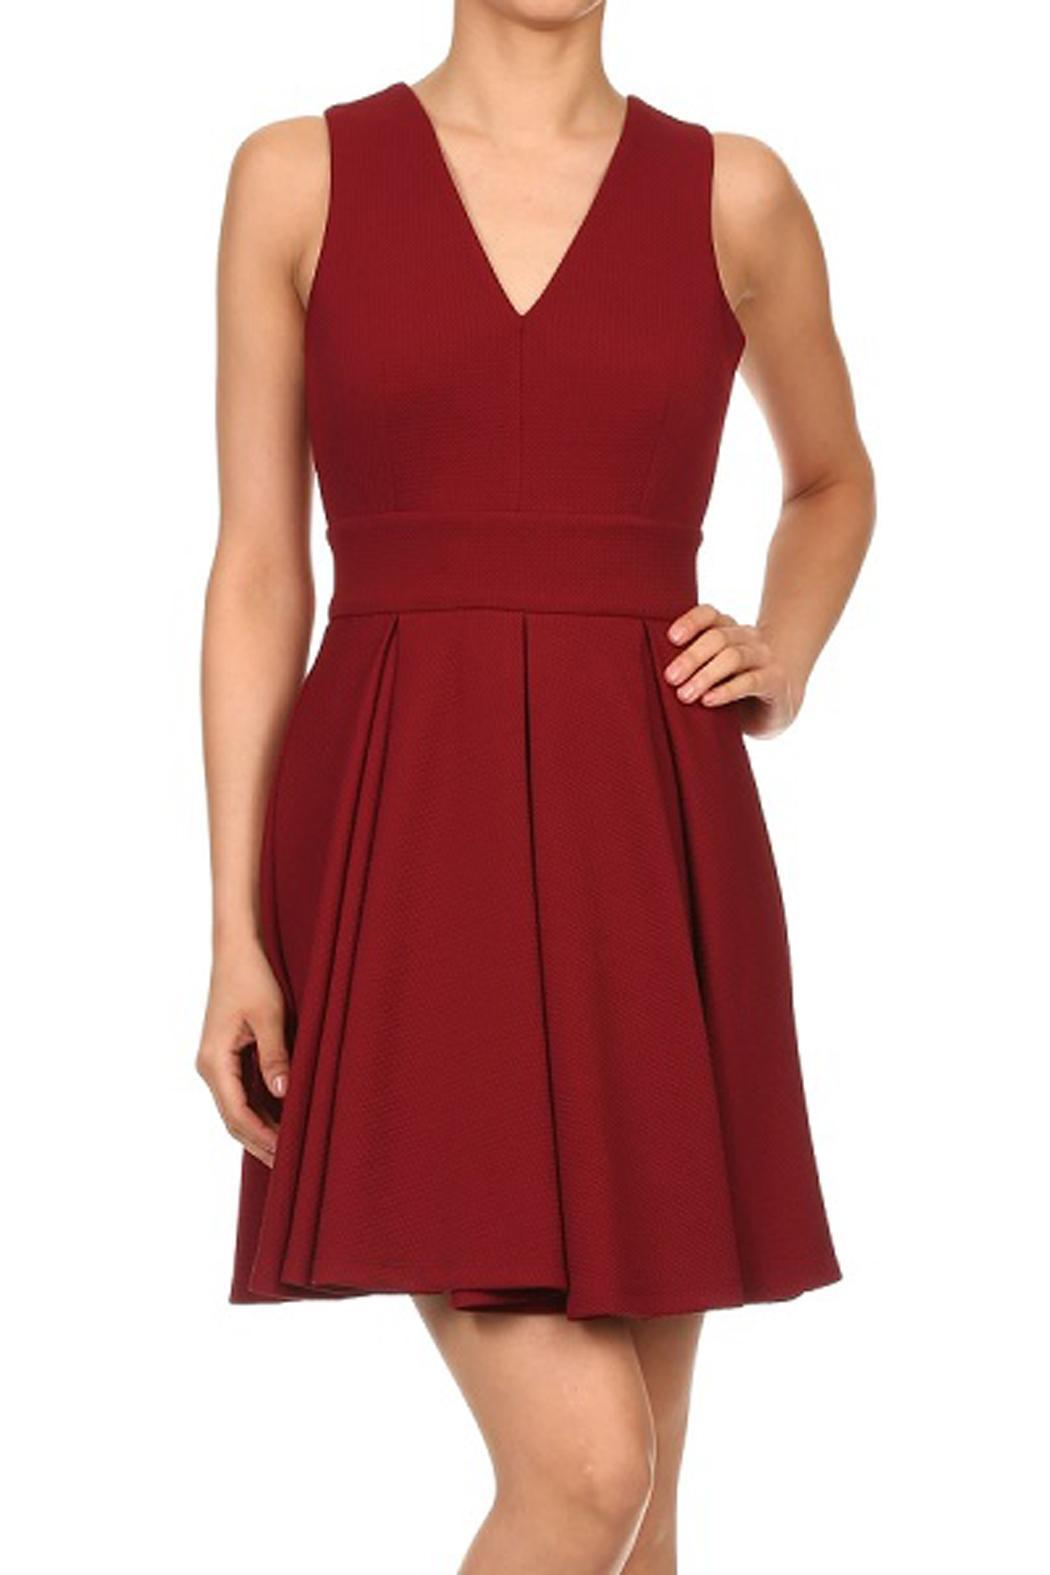 01a5ab6fef0 Haute Monde Pleated Red Dress from Orange County by Maple Boutique ...